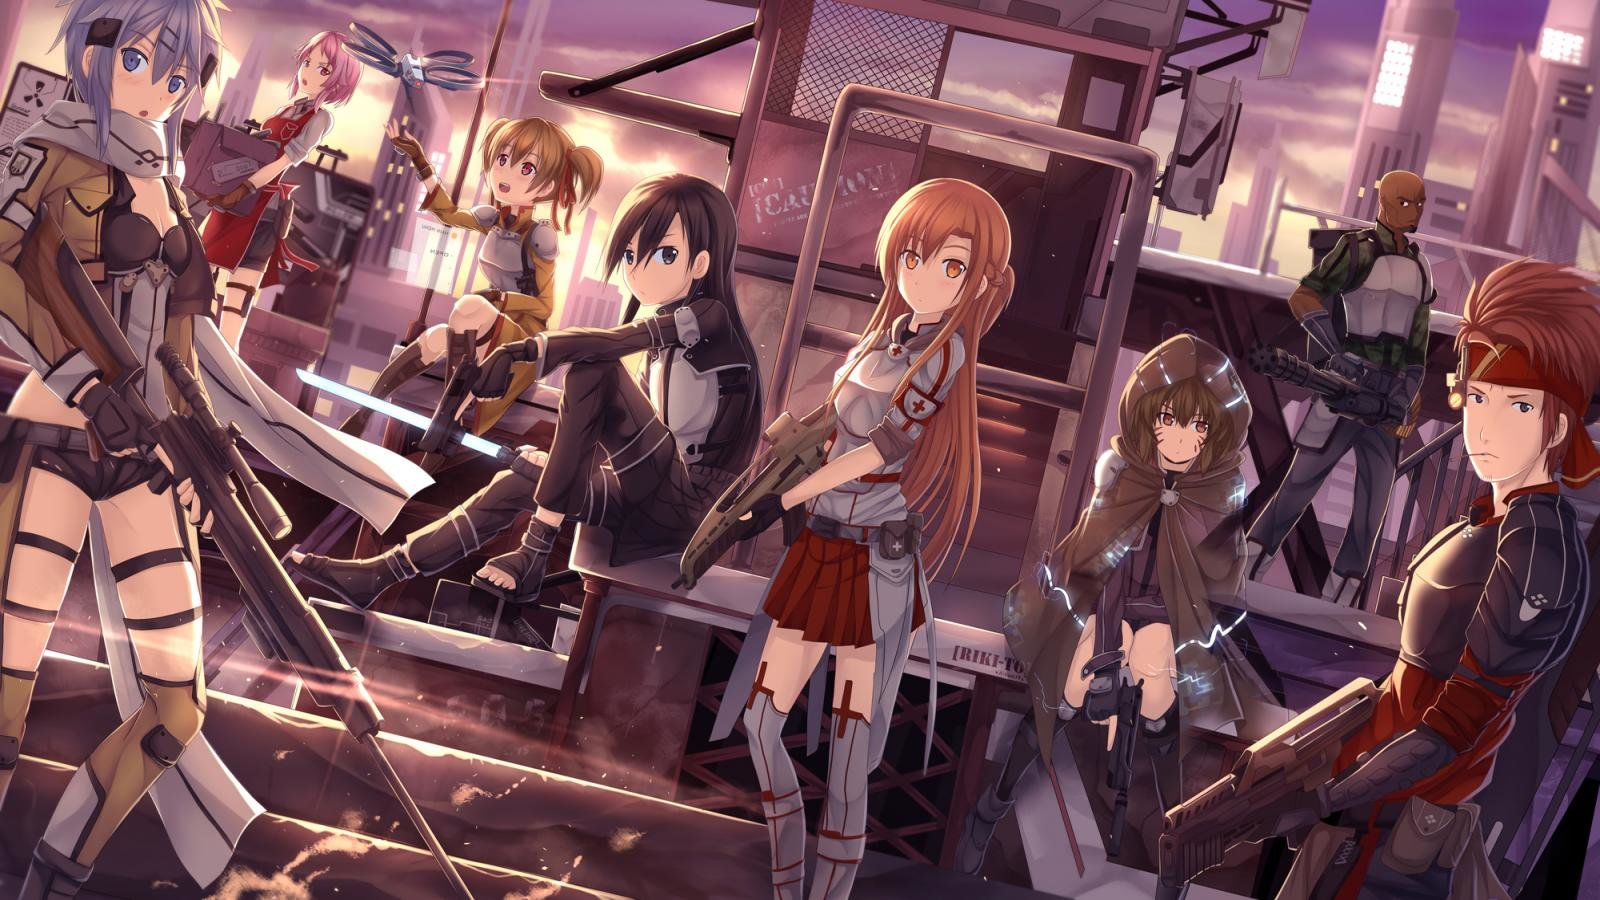 Download hd 1600x900 Sword Art Online 2 (II) desktop background ID:112256 for free